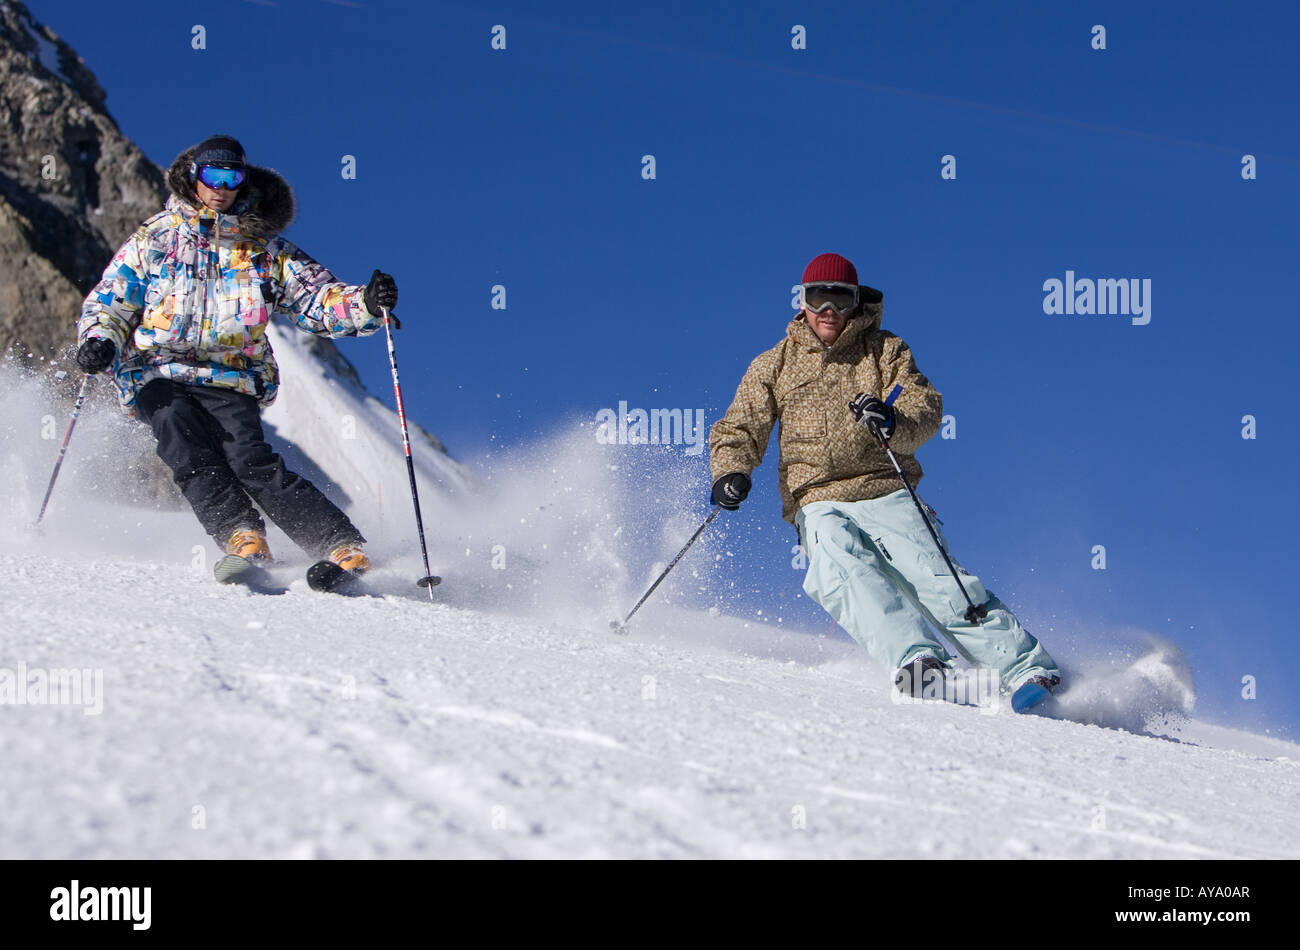 Two skiers dangerously close on slopes in Tignes, France - Stock Image